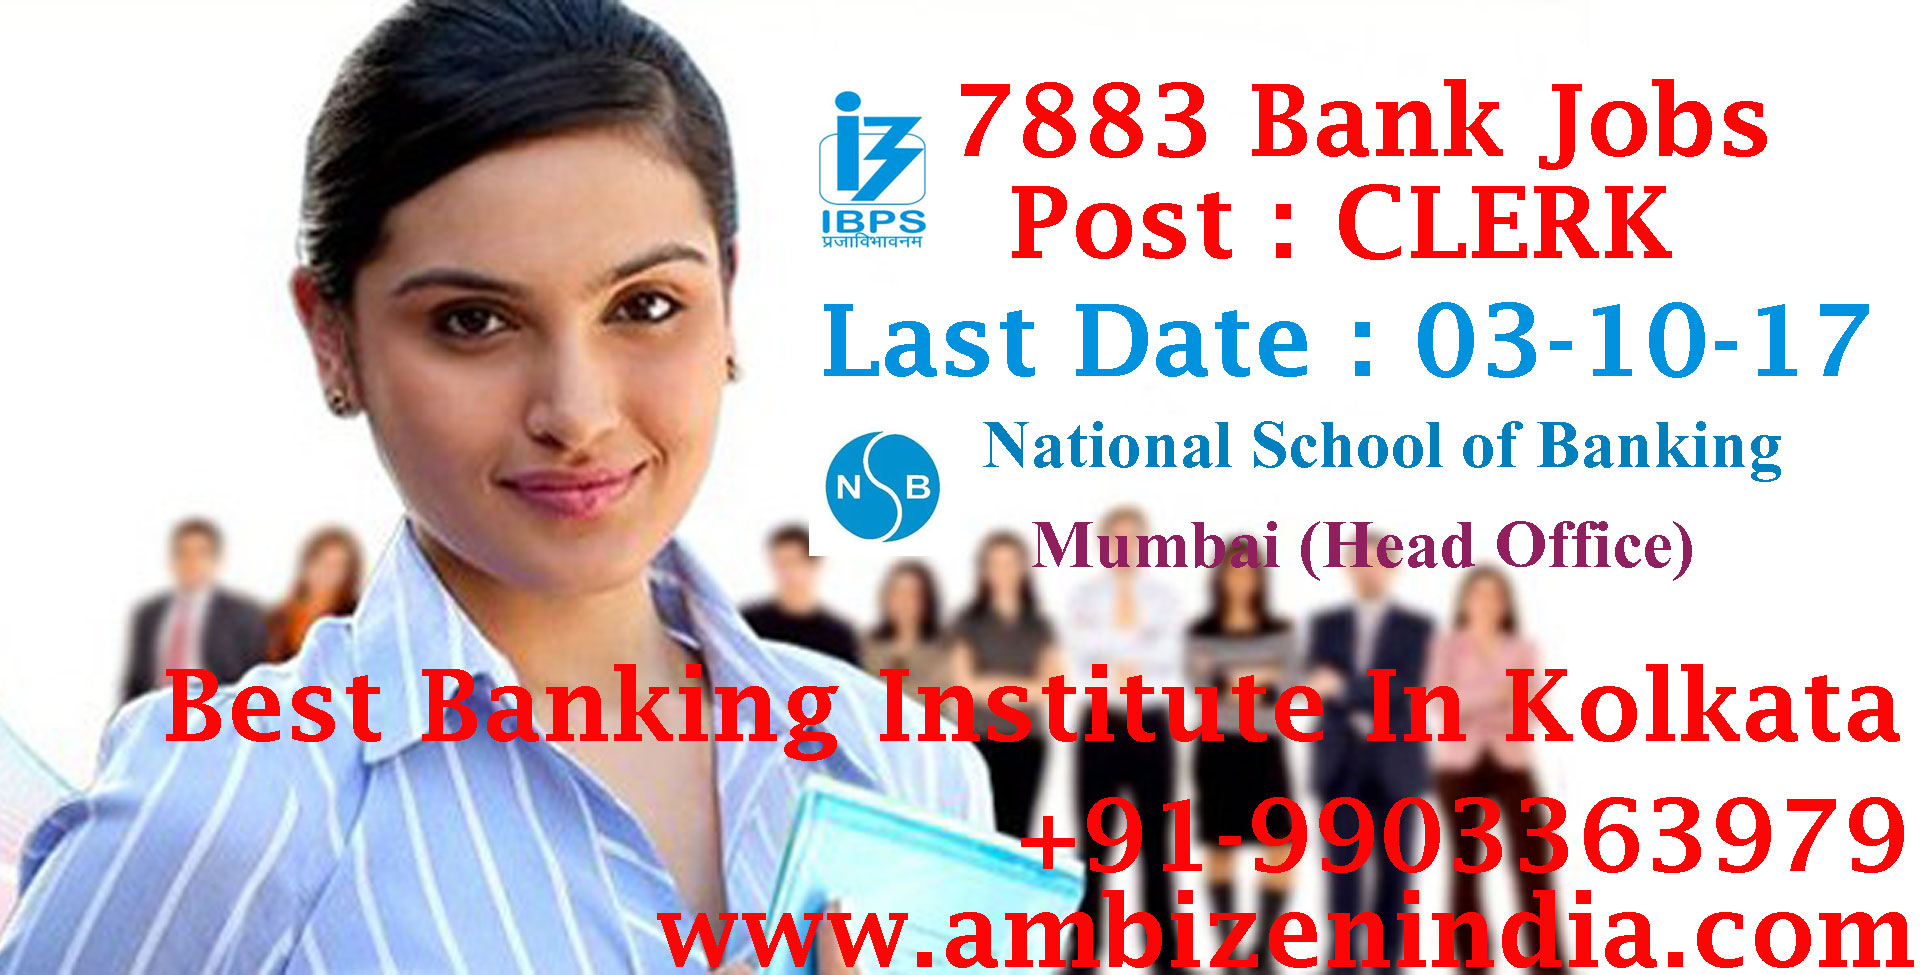 Image for Fresh Vacancies. IBPS(Institute of Banking Personnel Selection).